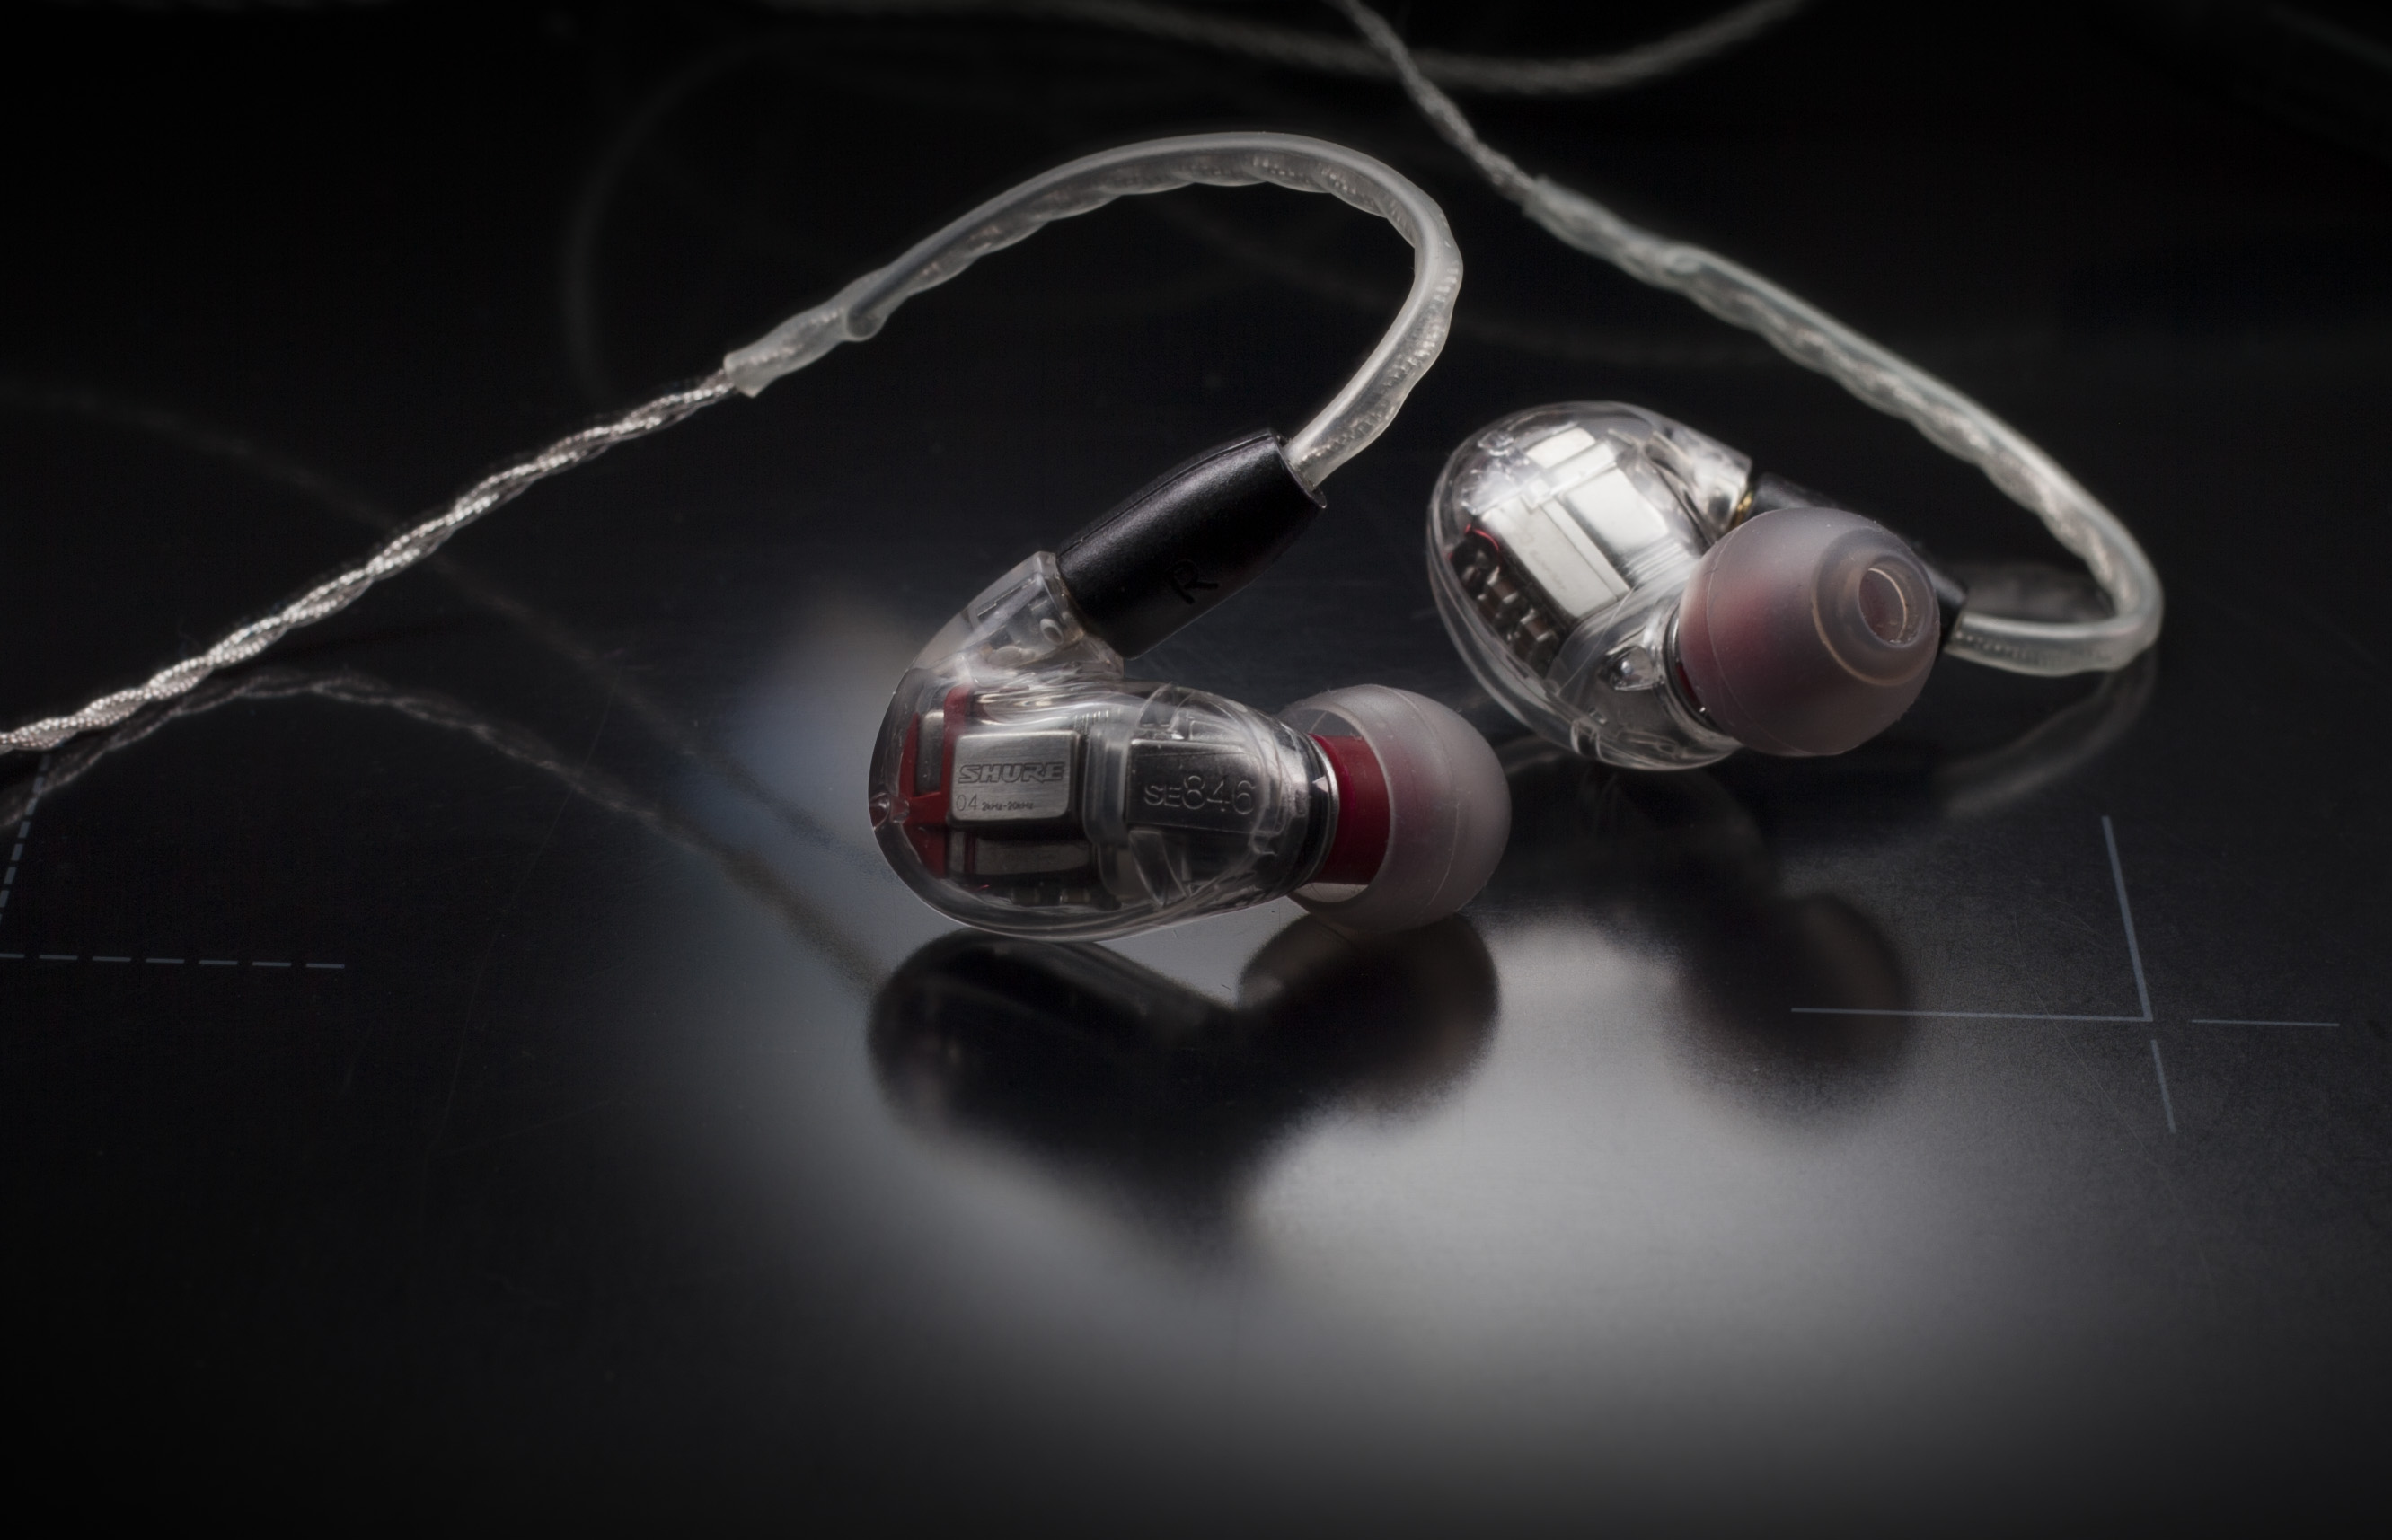 shure with tips and cable